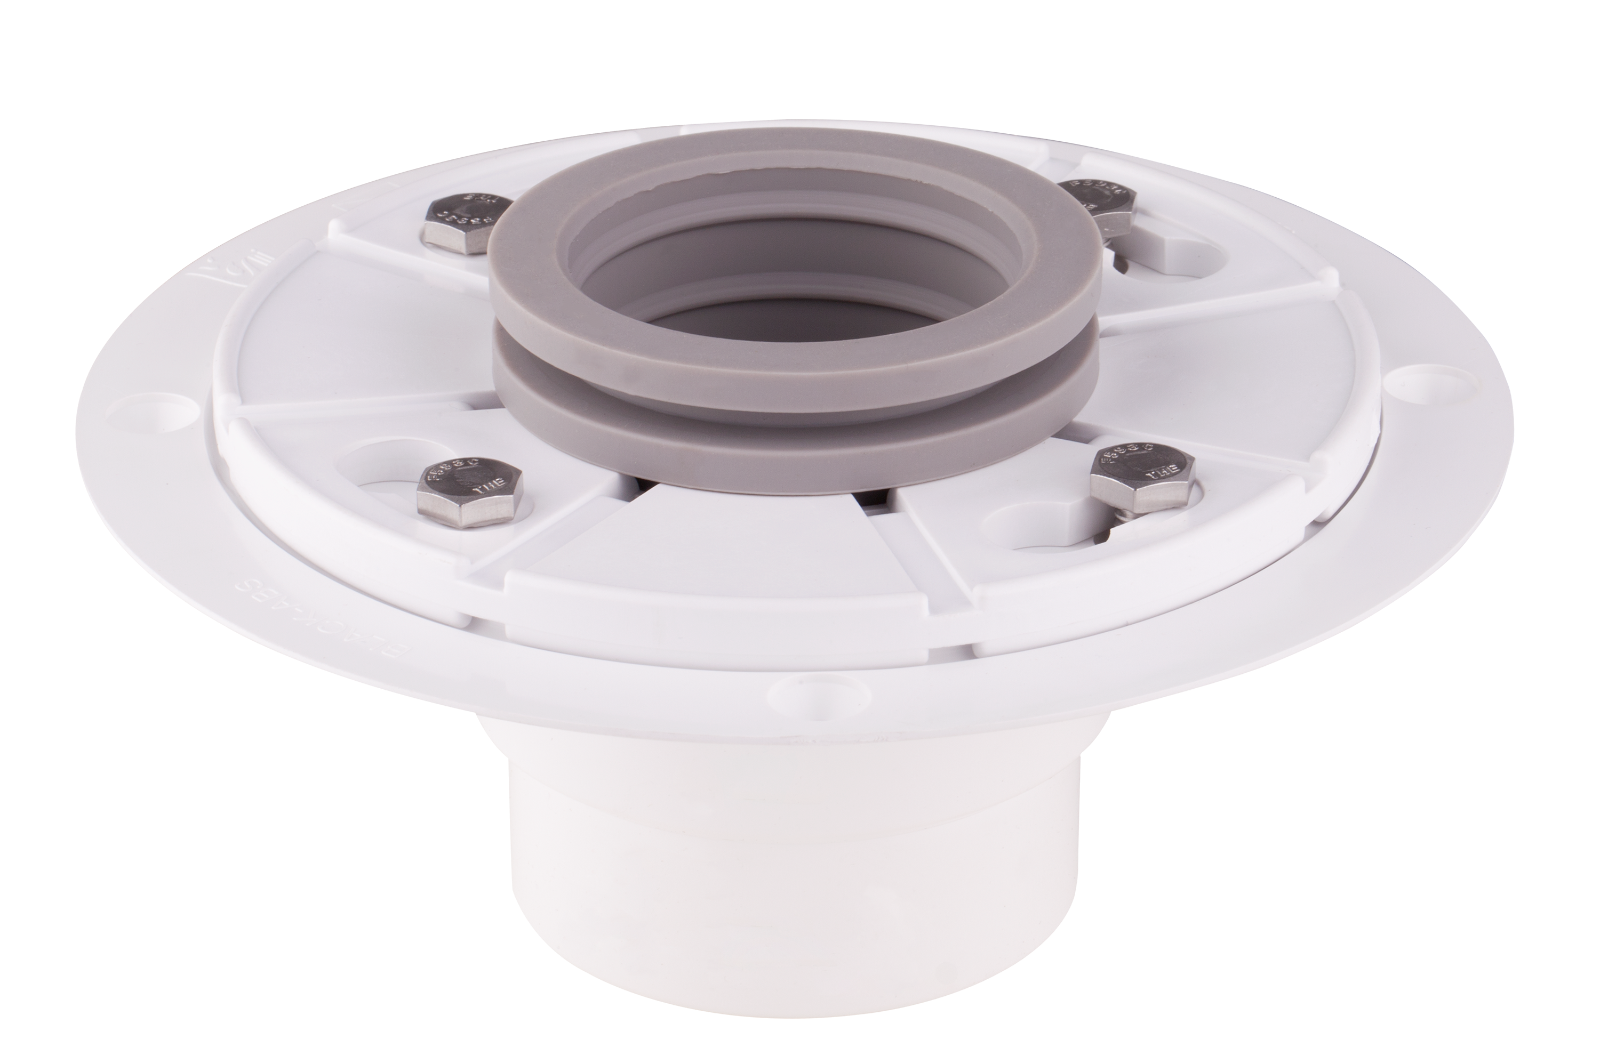 Picture of: 3 Pc Shower Drain Base With Rubber Gasket For 2 Inch Linear Installation No Rust For Sale Online Ebay